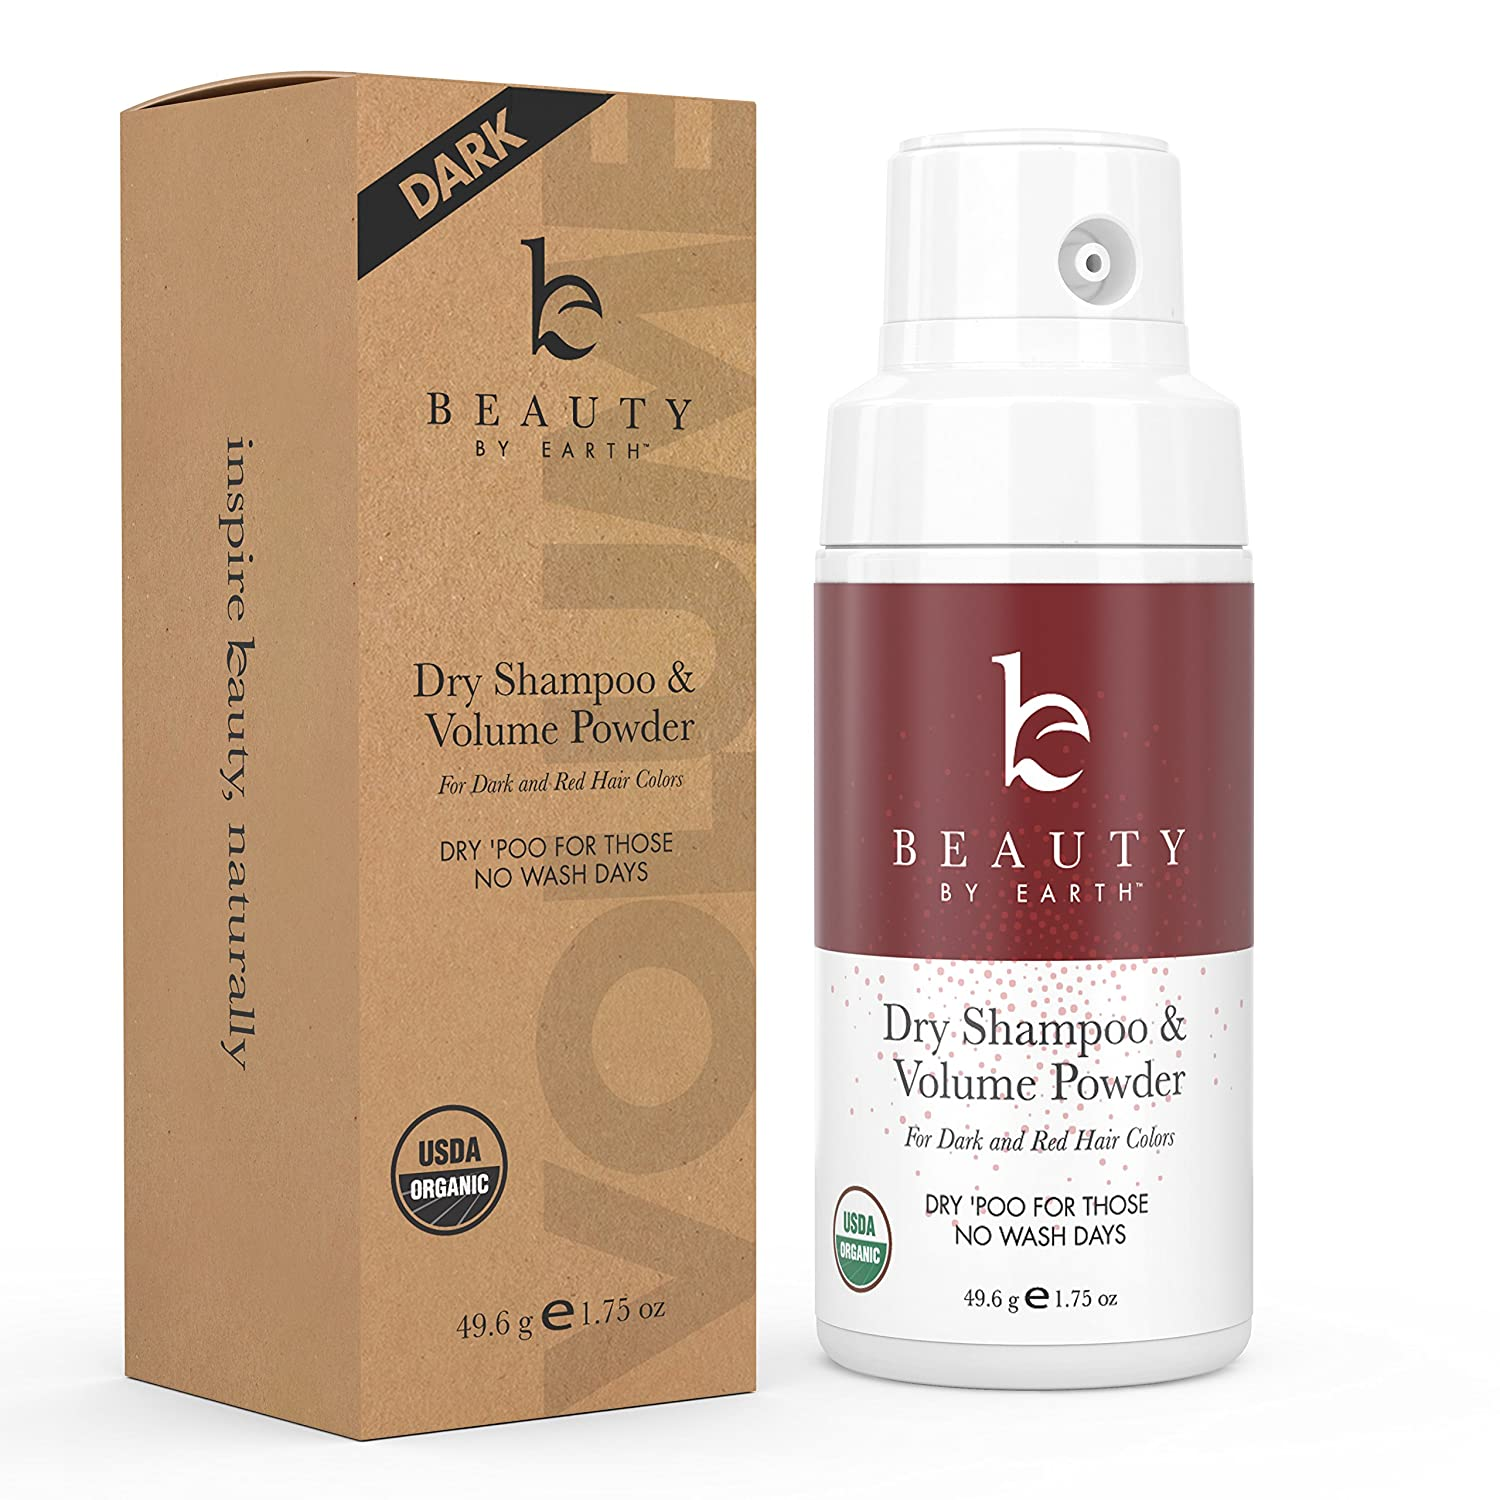 Organic Dry Shampoo Powder; for Instant Unwashed Volume and Style; Best for Brunette, Brown, Dark Red and Black Hair Colours; Clean All Natural Scent Dry 'Poo for Those No Wash Days; 1.75oz Beauty by Earth